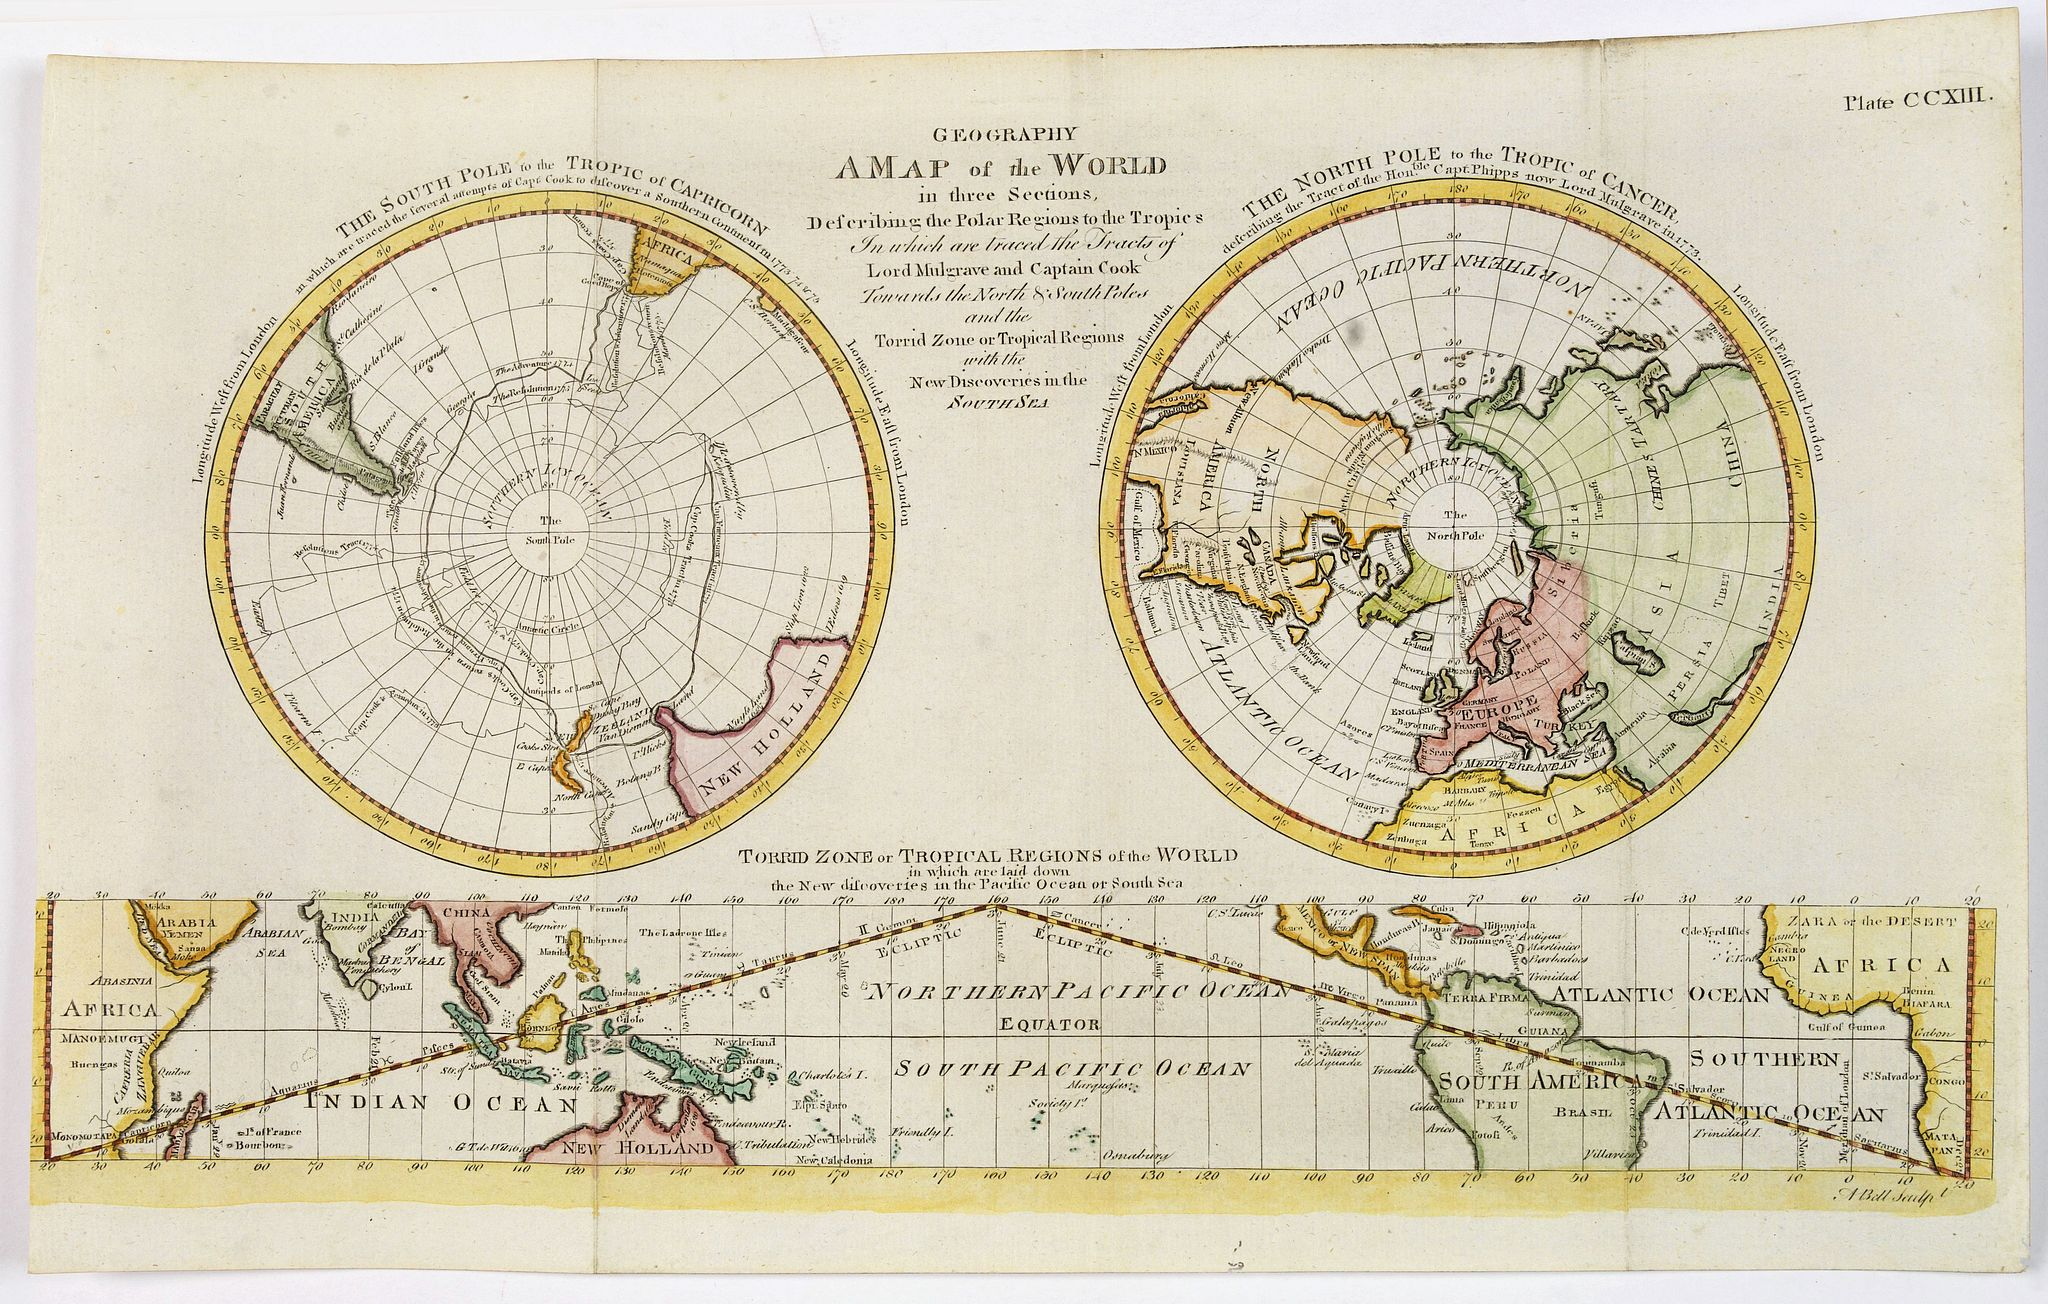 BARKER, William. -  Geography A Map of the World in three Sections, Describing the Polar Regions to the Tropic's. . .